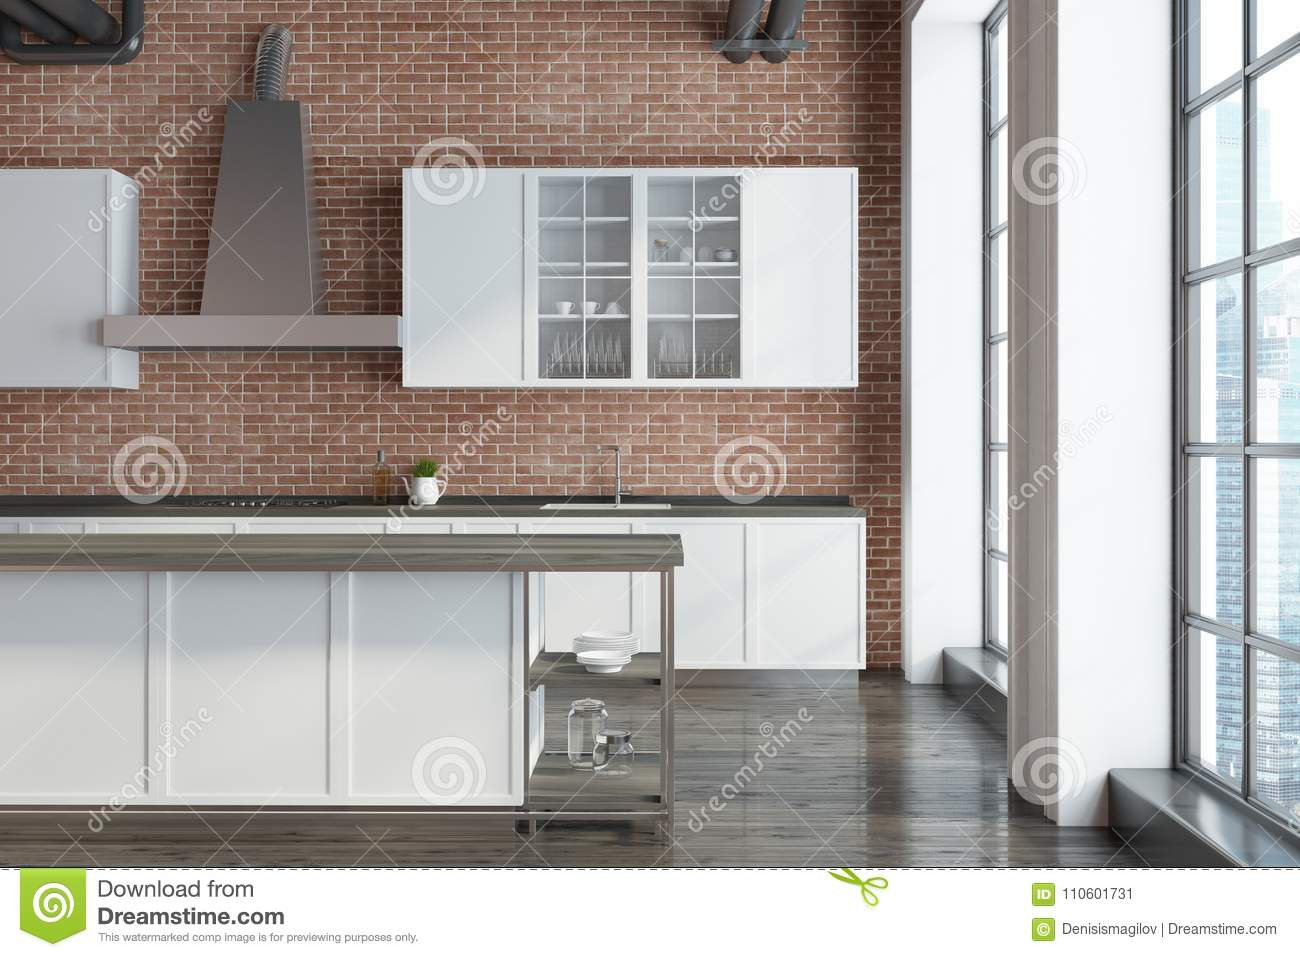 Brick Kitchen, White Countertops Close Up